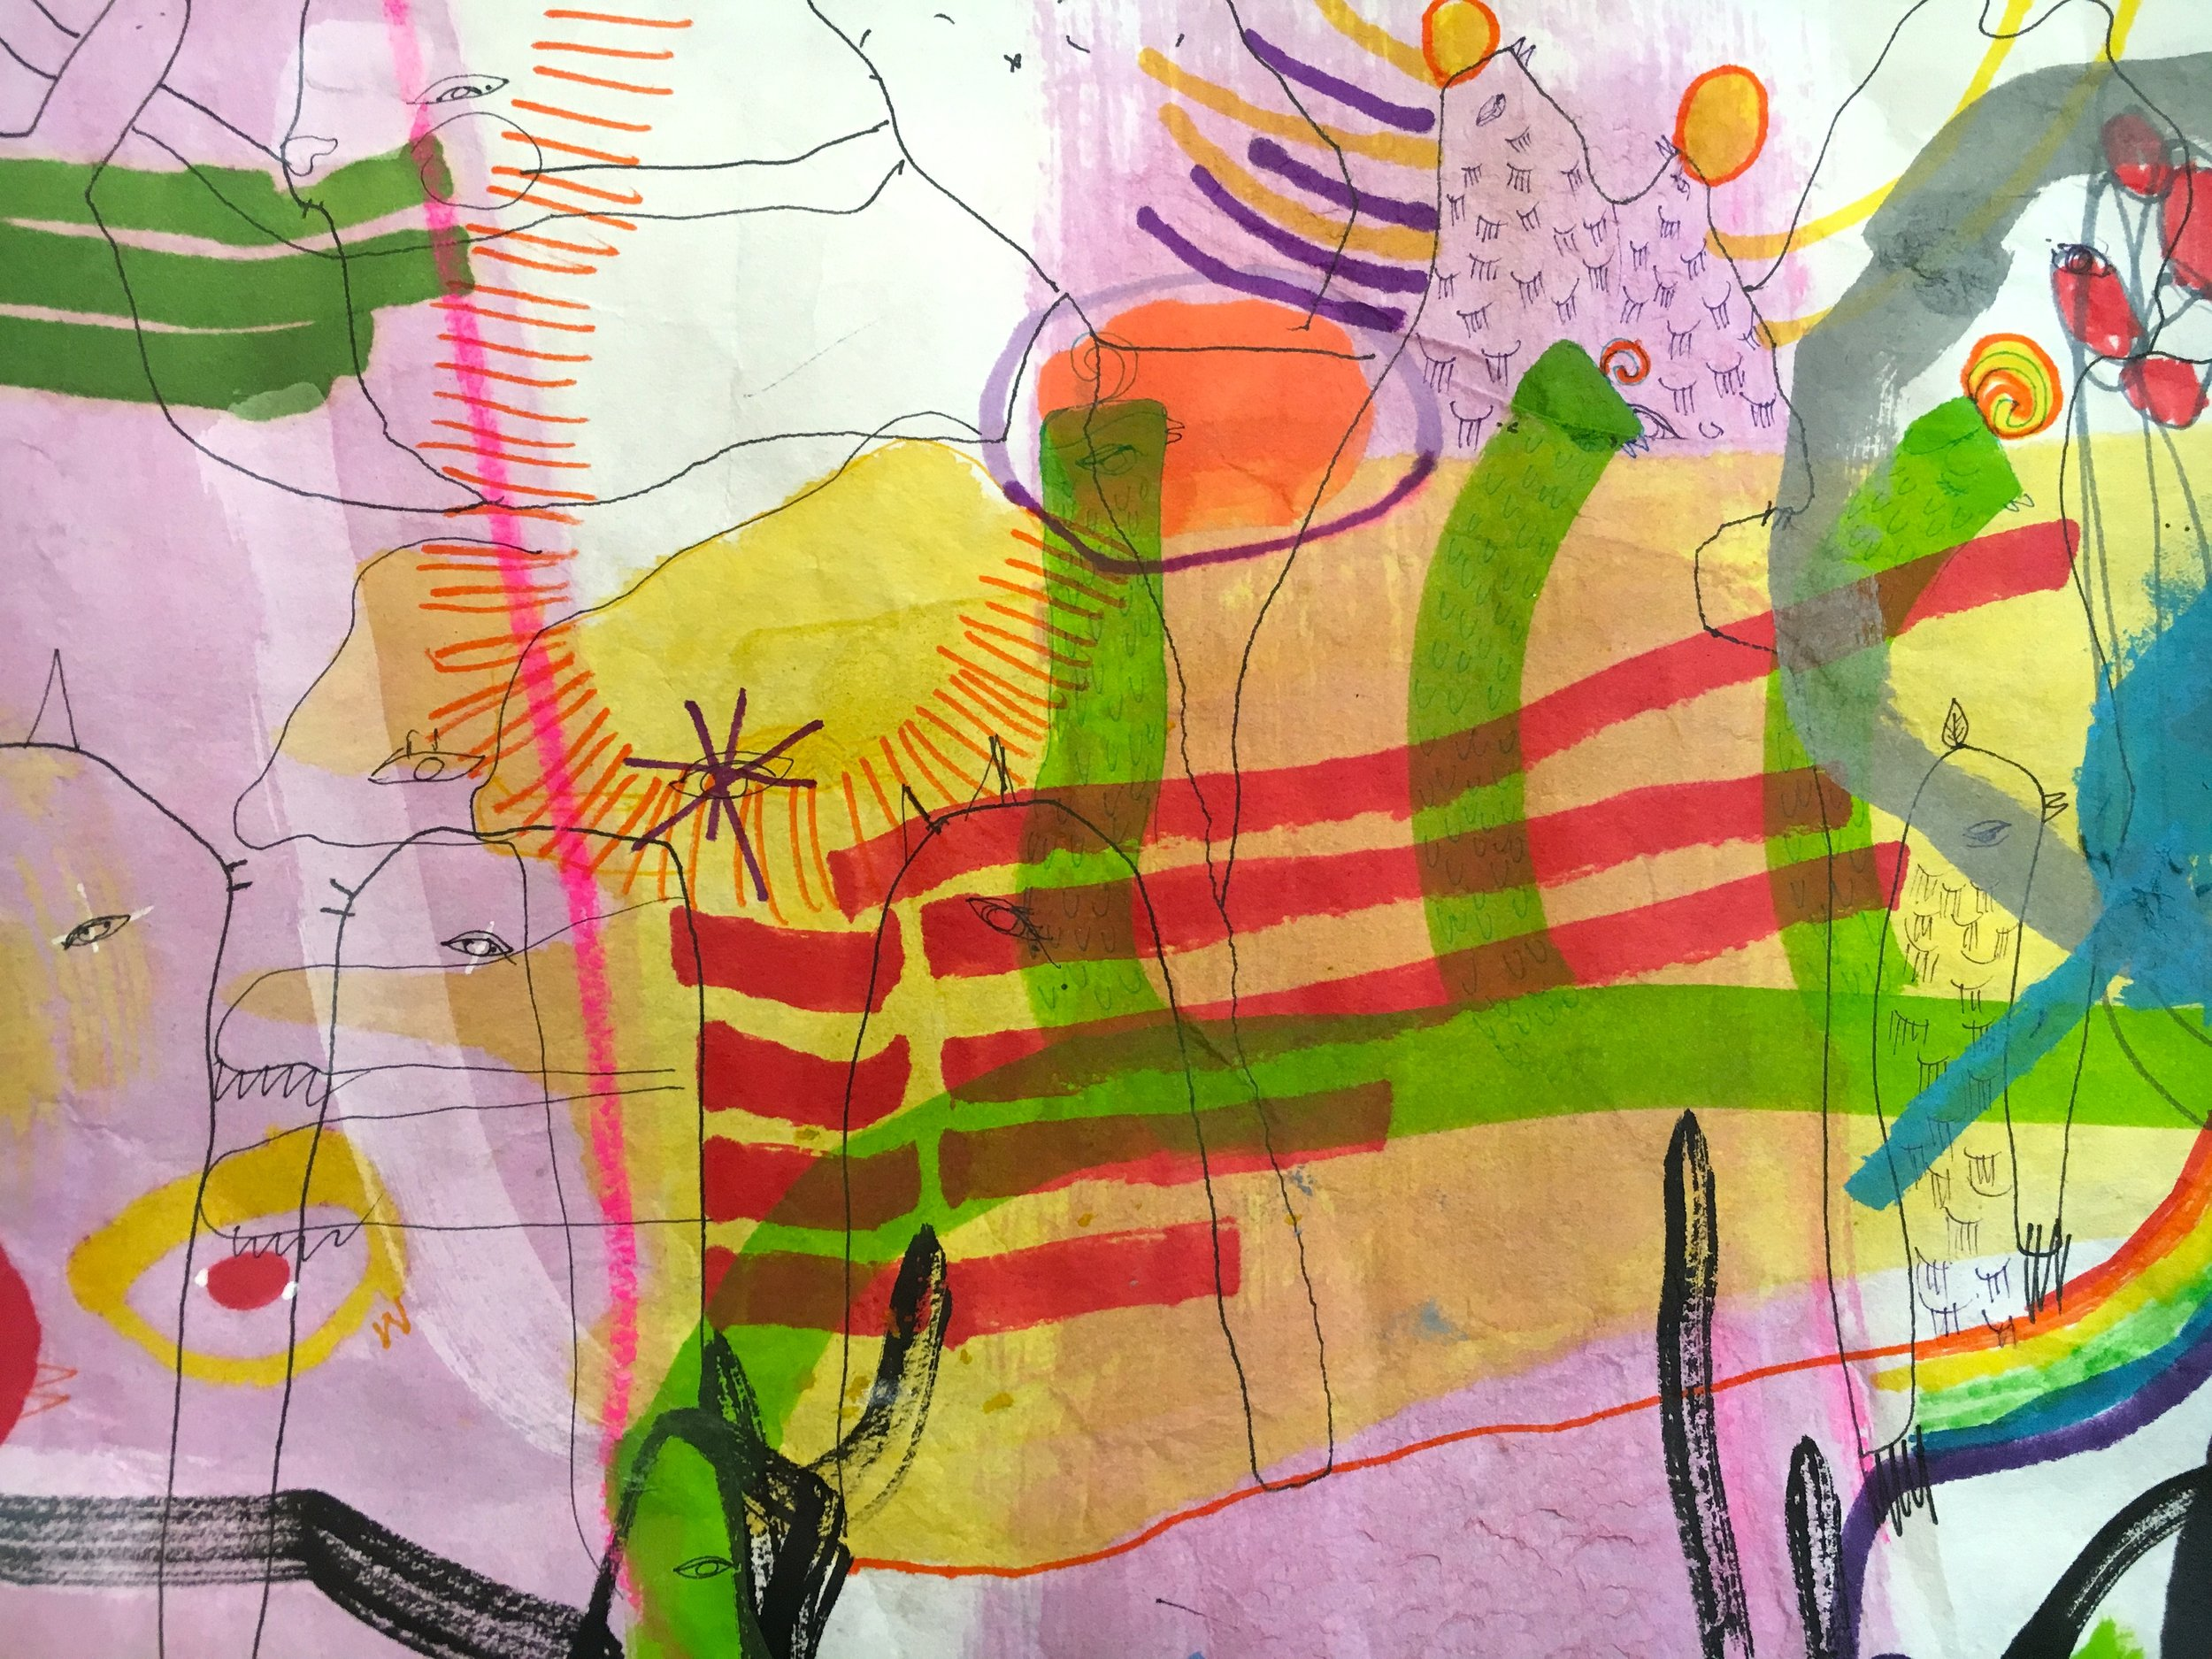 Animal Animal Animal  scroll 12 inches x 60 feet ink, dye, watercolor, crayon and pencil on mulberry scroll with redwood rollers 2018